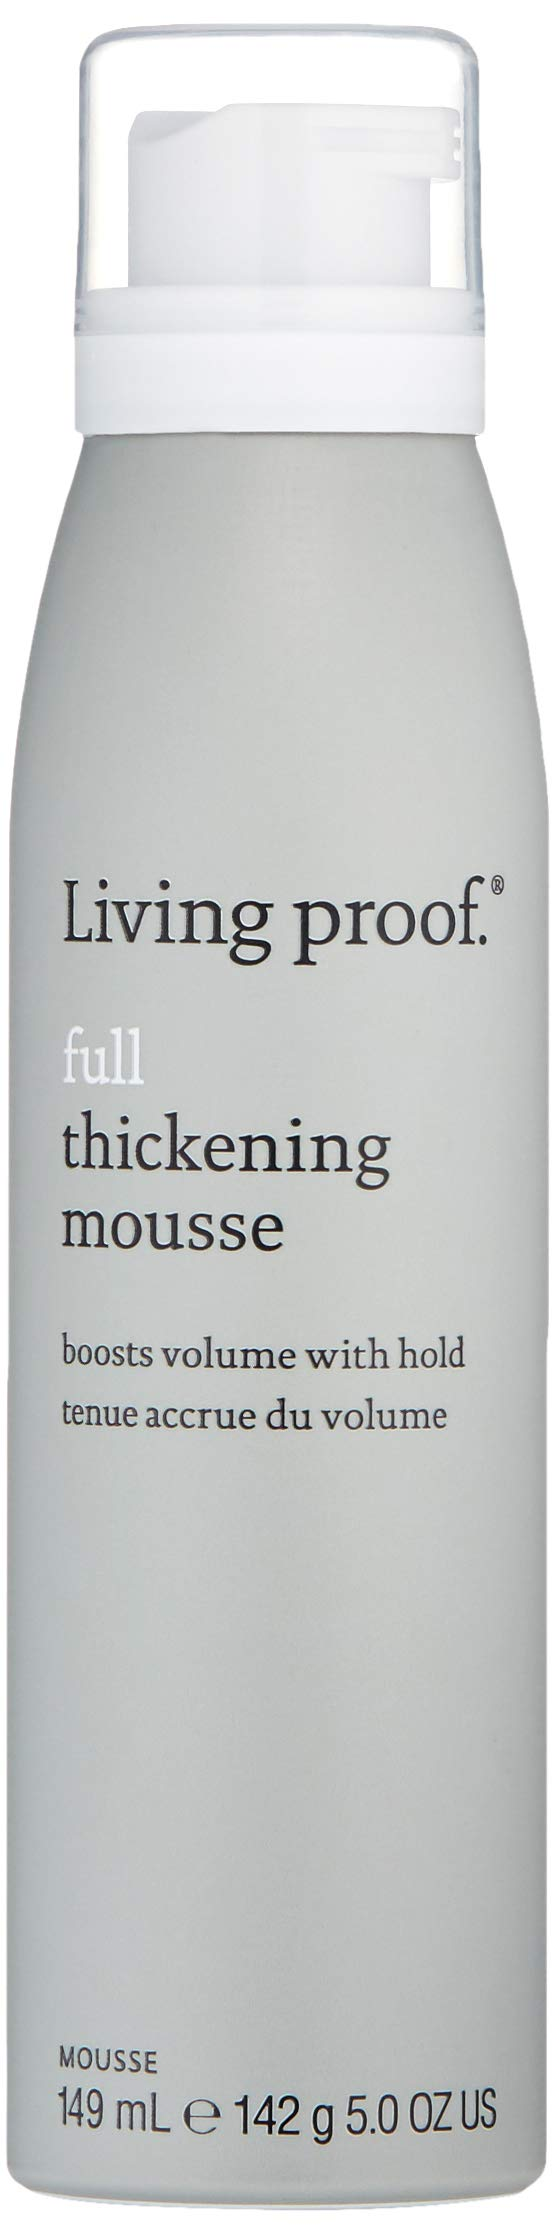 Living Proof Full Thickening Mousse, 5 oz by Living Proof